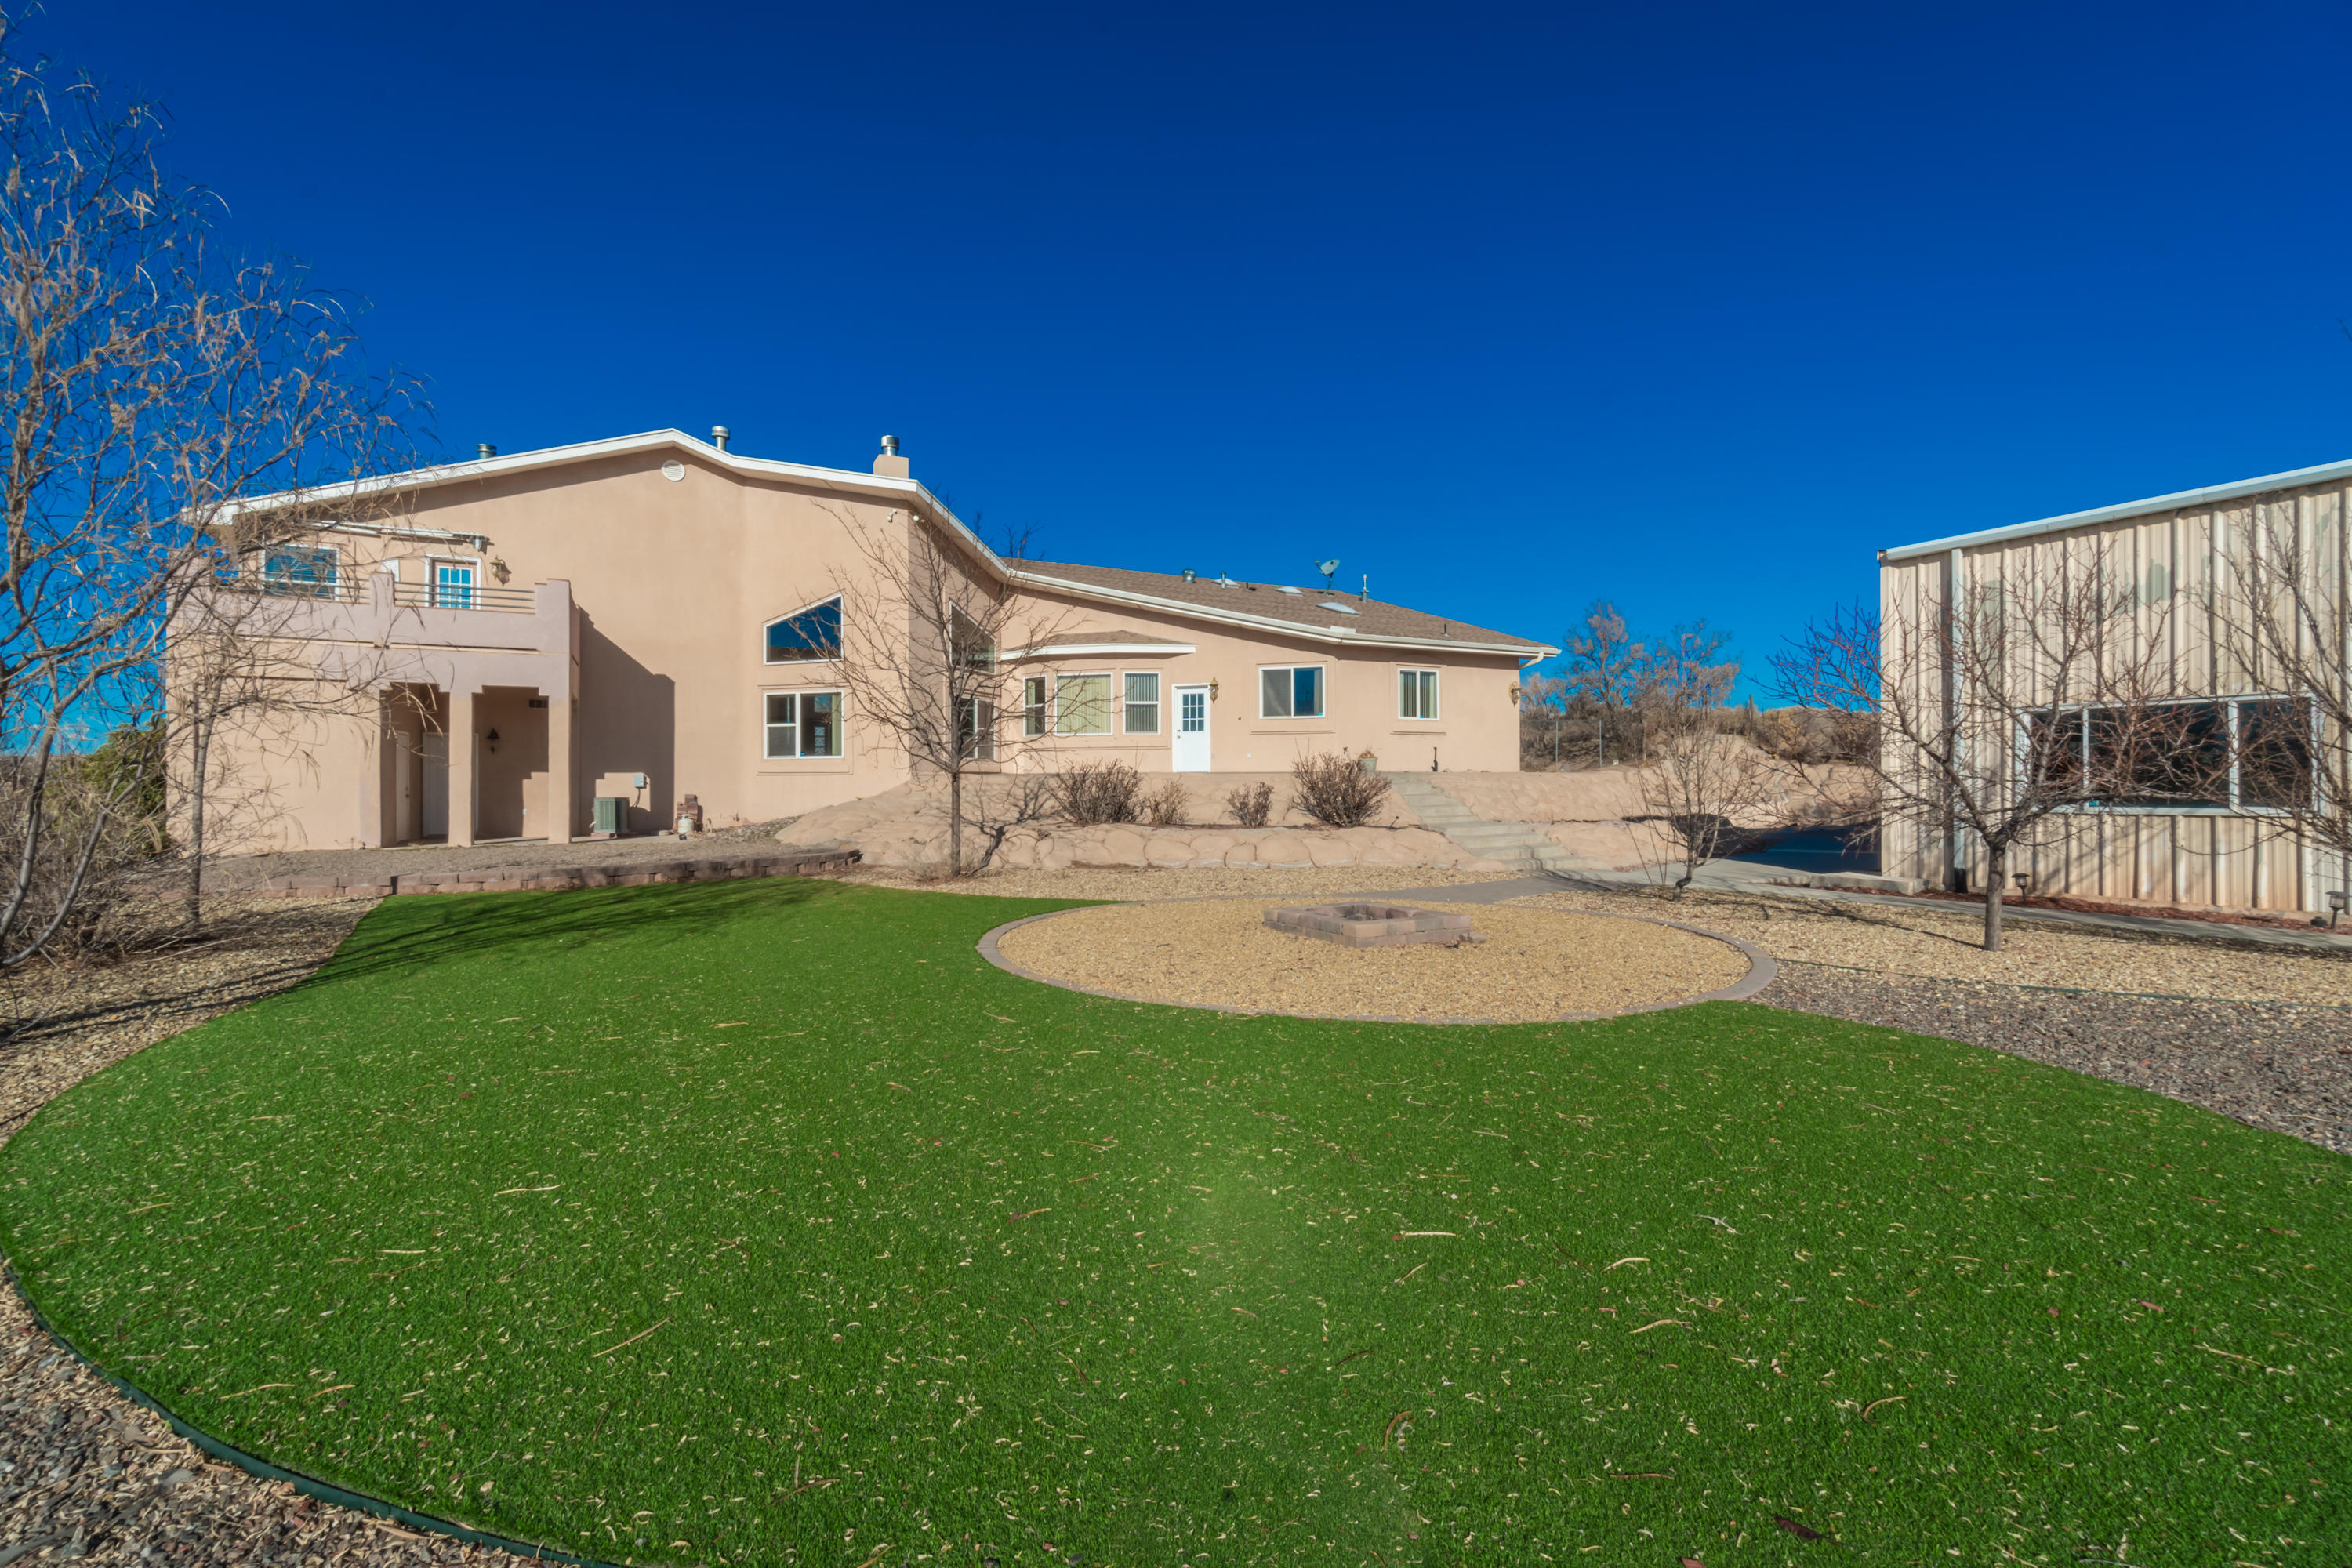 This fantastic 3194 sq ft custom built home is one of a kind! 4 bedrooms, 3 full bathrooms, and an office. The master bedroom boasts nearly 700 sq feet, double sided fireplace, and has a private balcony with a hot tub. Breathtaking views of the Sandia mountains. There is a nearly 6000 sq ft special use warehouse sitting on a fully landscaped one-acre lot. The special use building is finished with offices, living quarters, and bathrooms. This unique property offers endless possibilities to create a work/life balance.